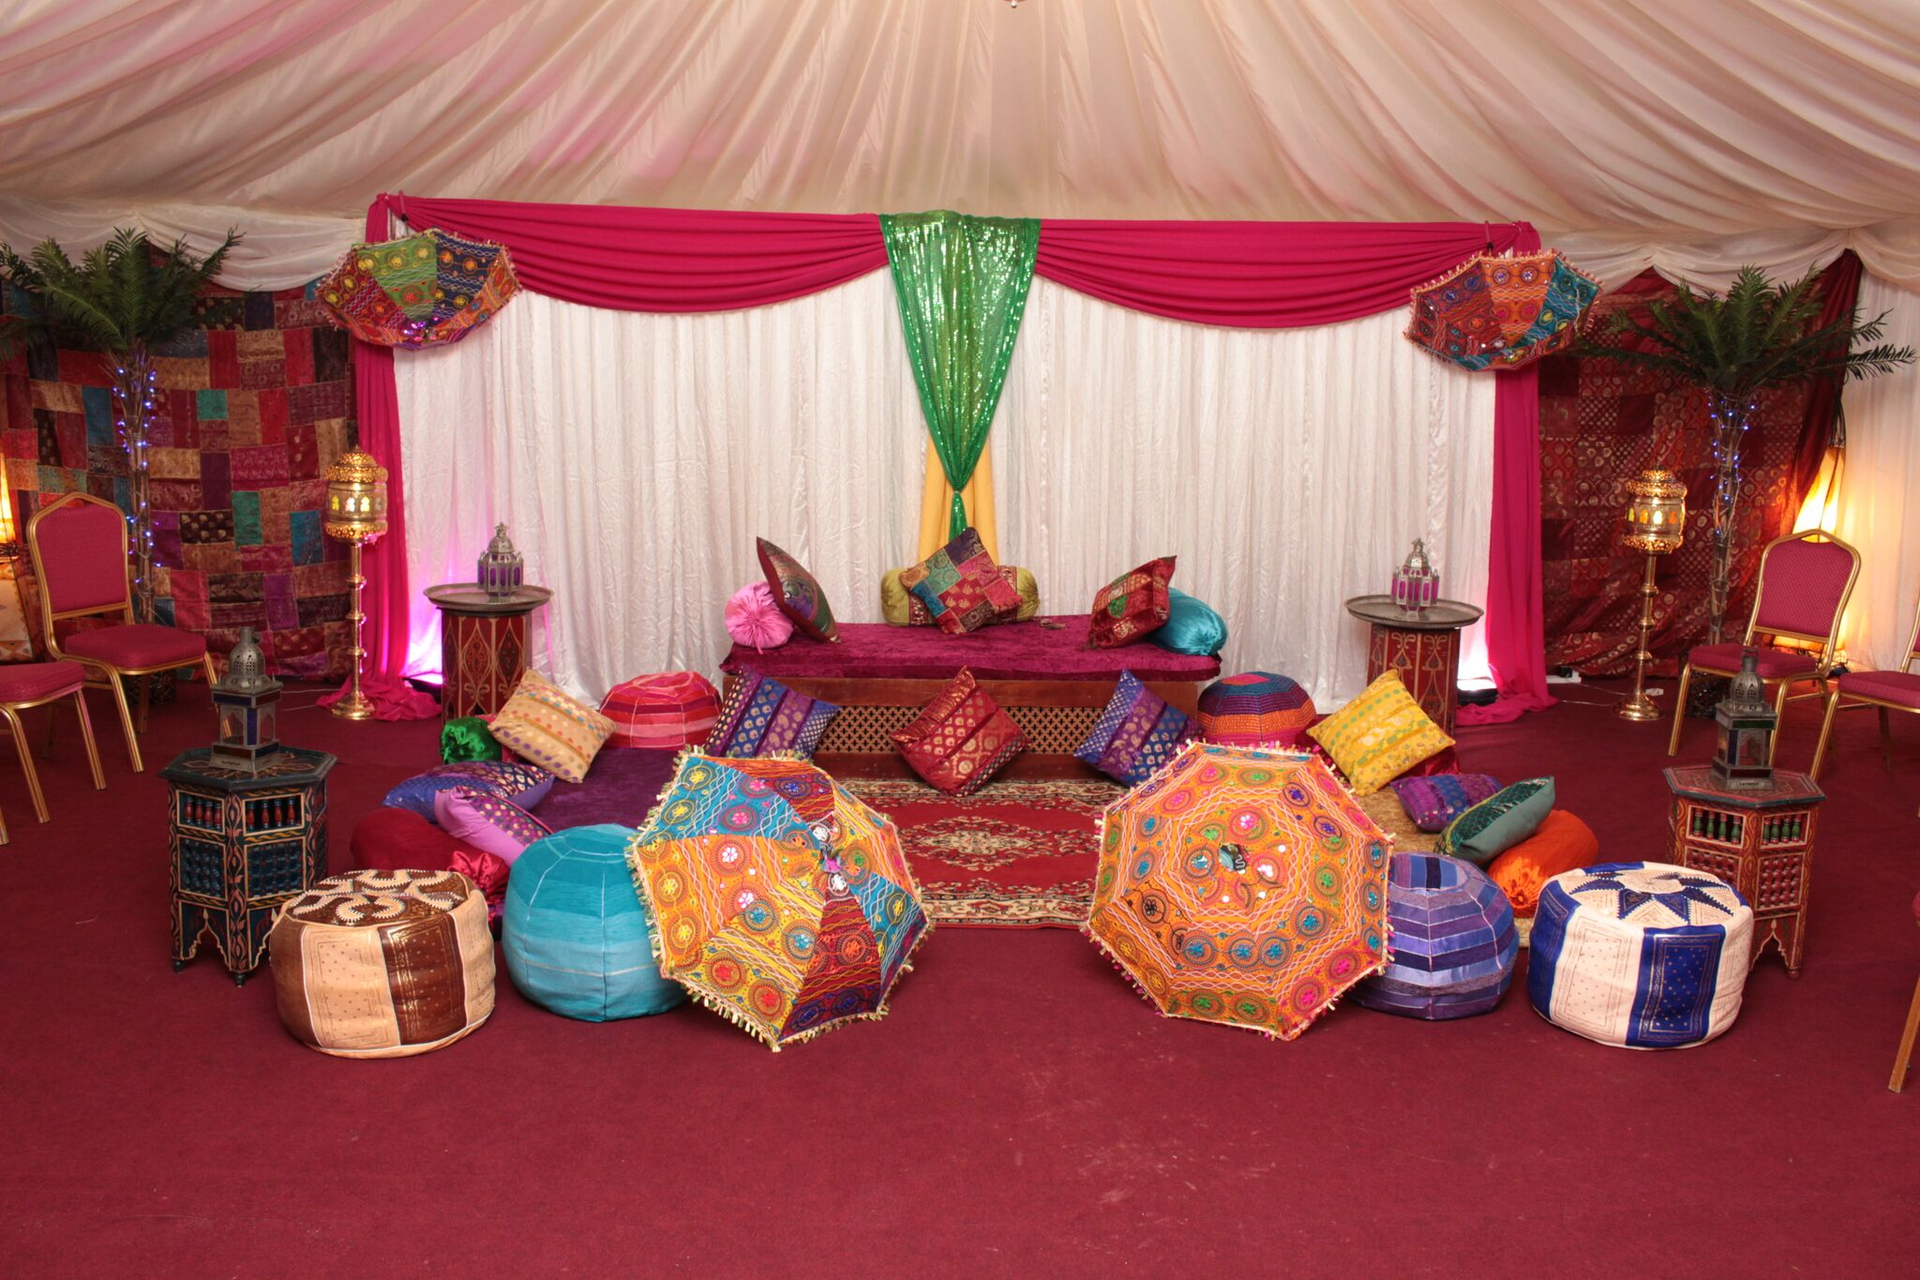 beautifully designed interior of a tent